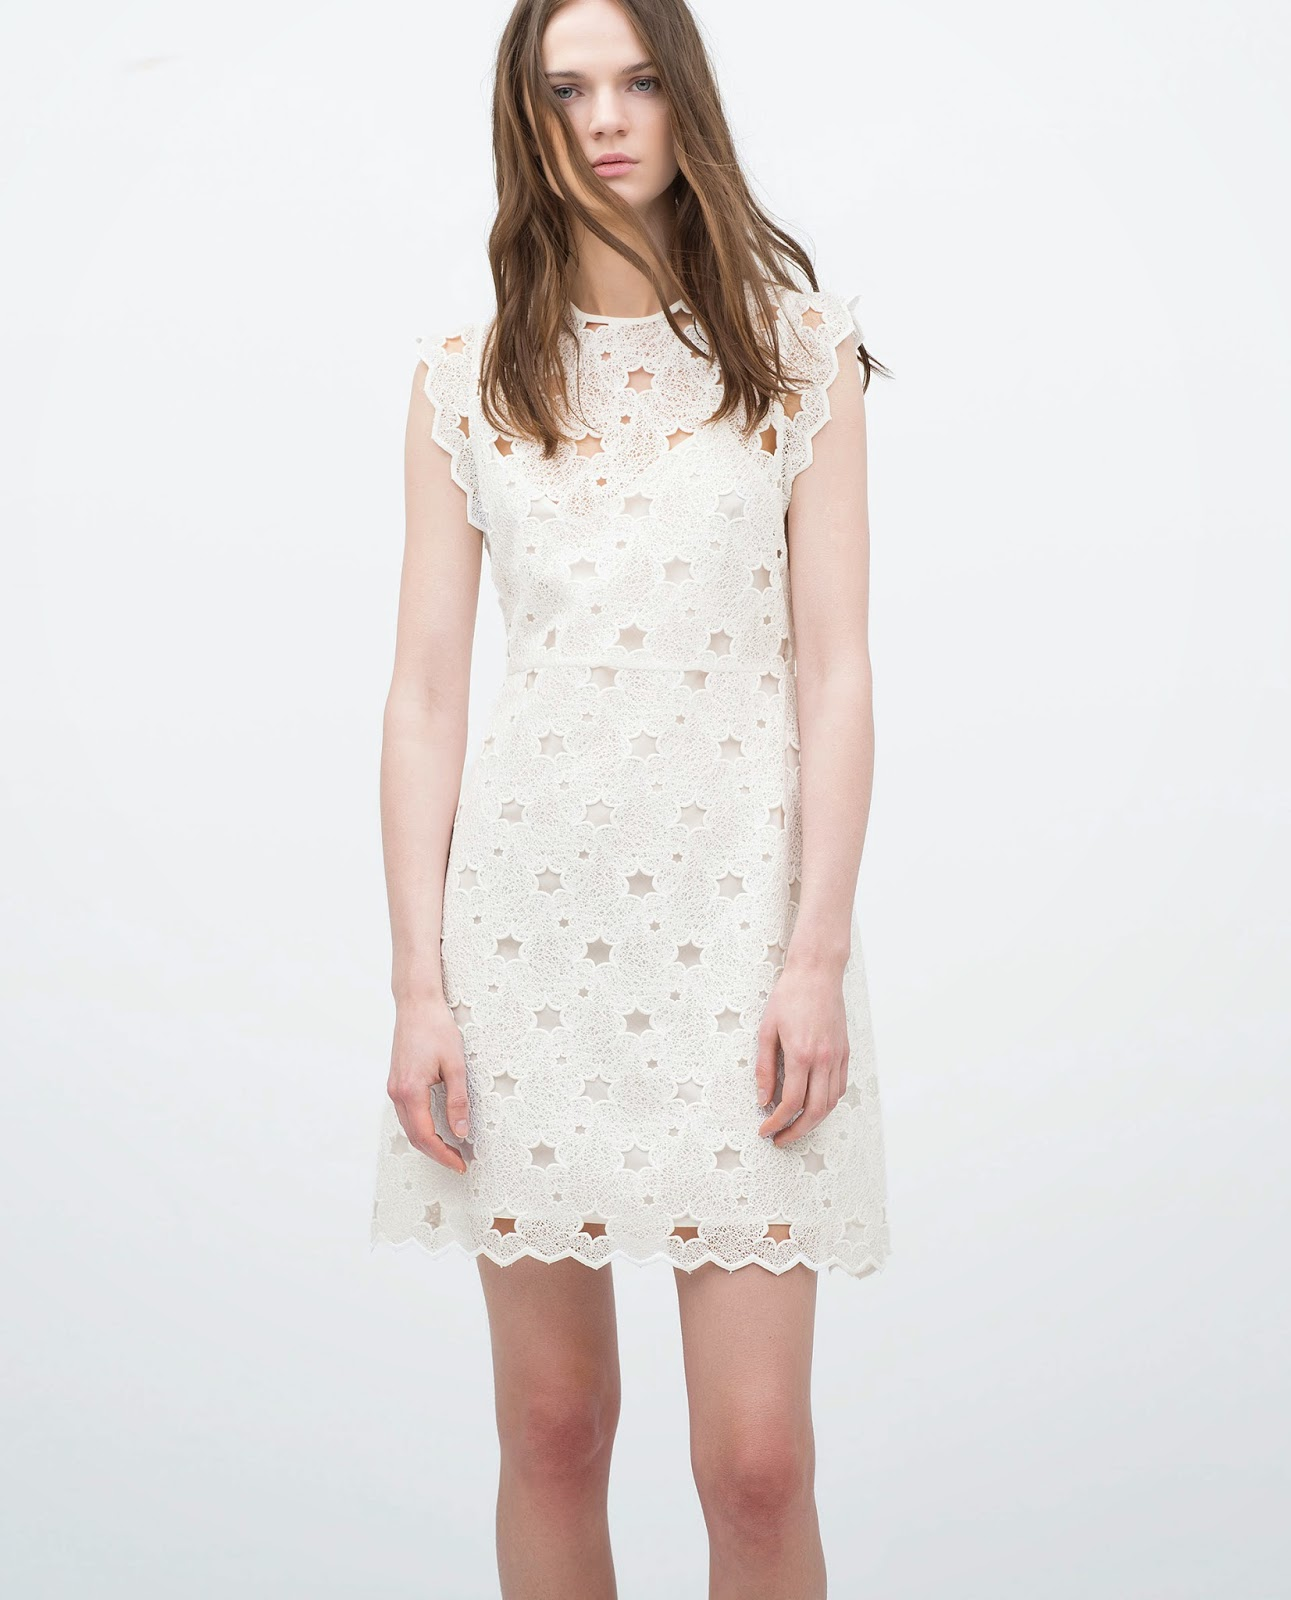 zara white dress